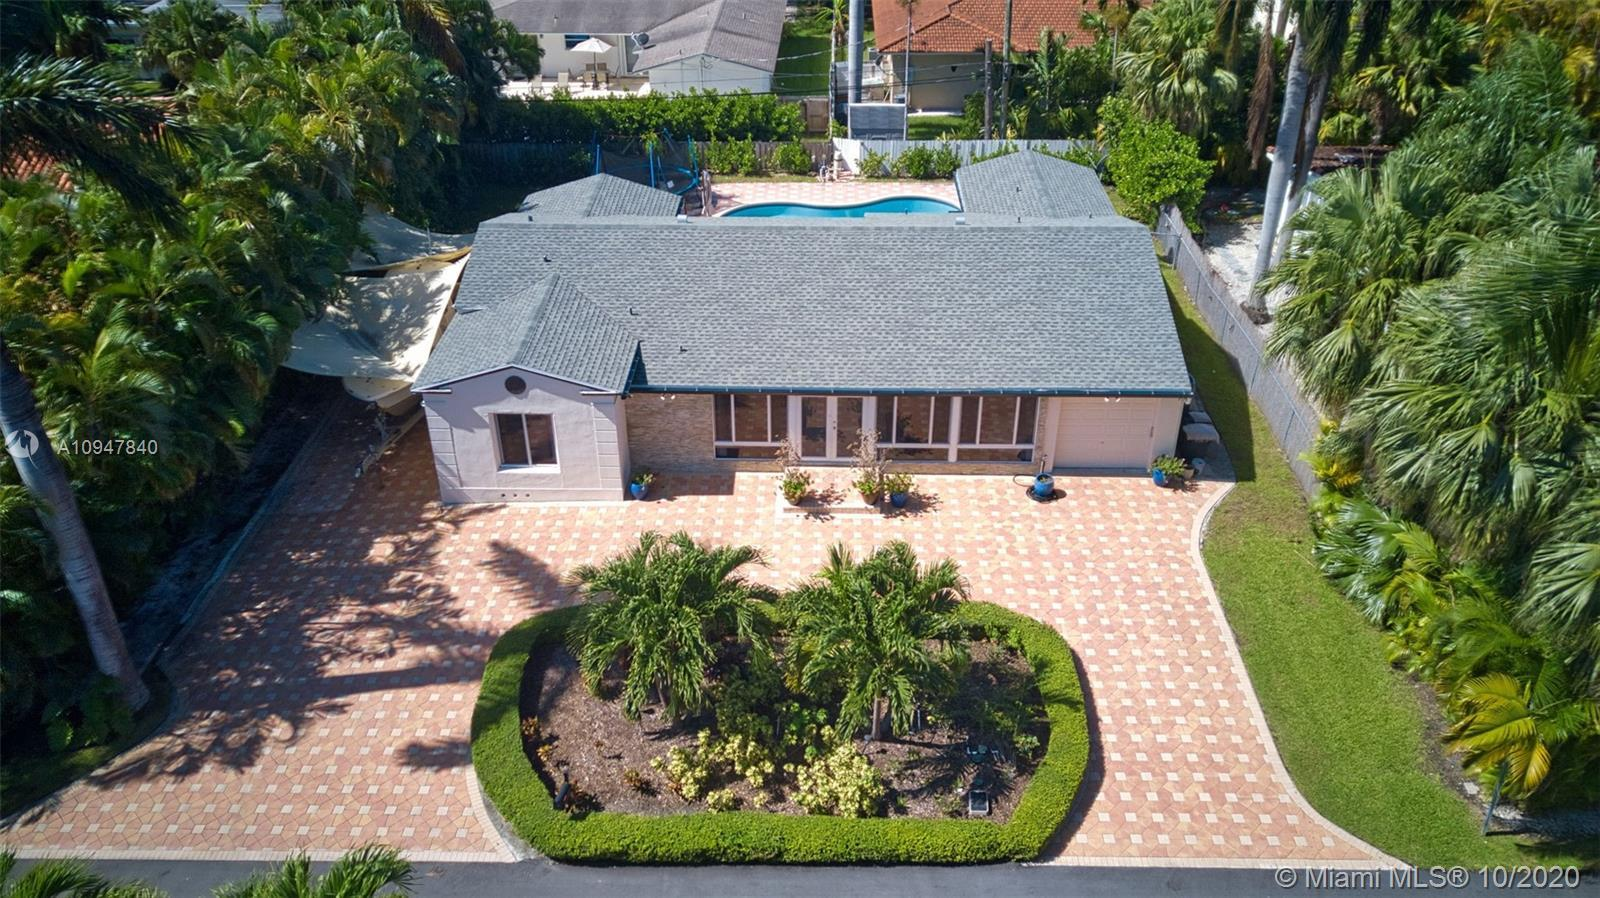 Stunning home with all the features desired in the Enclave Guard gated community of North Bay island